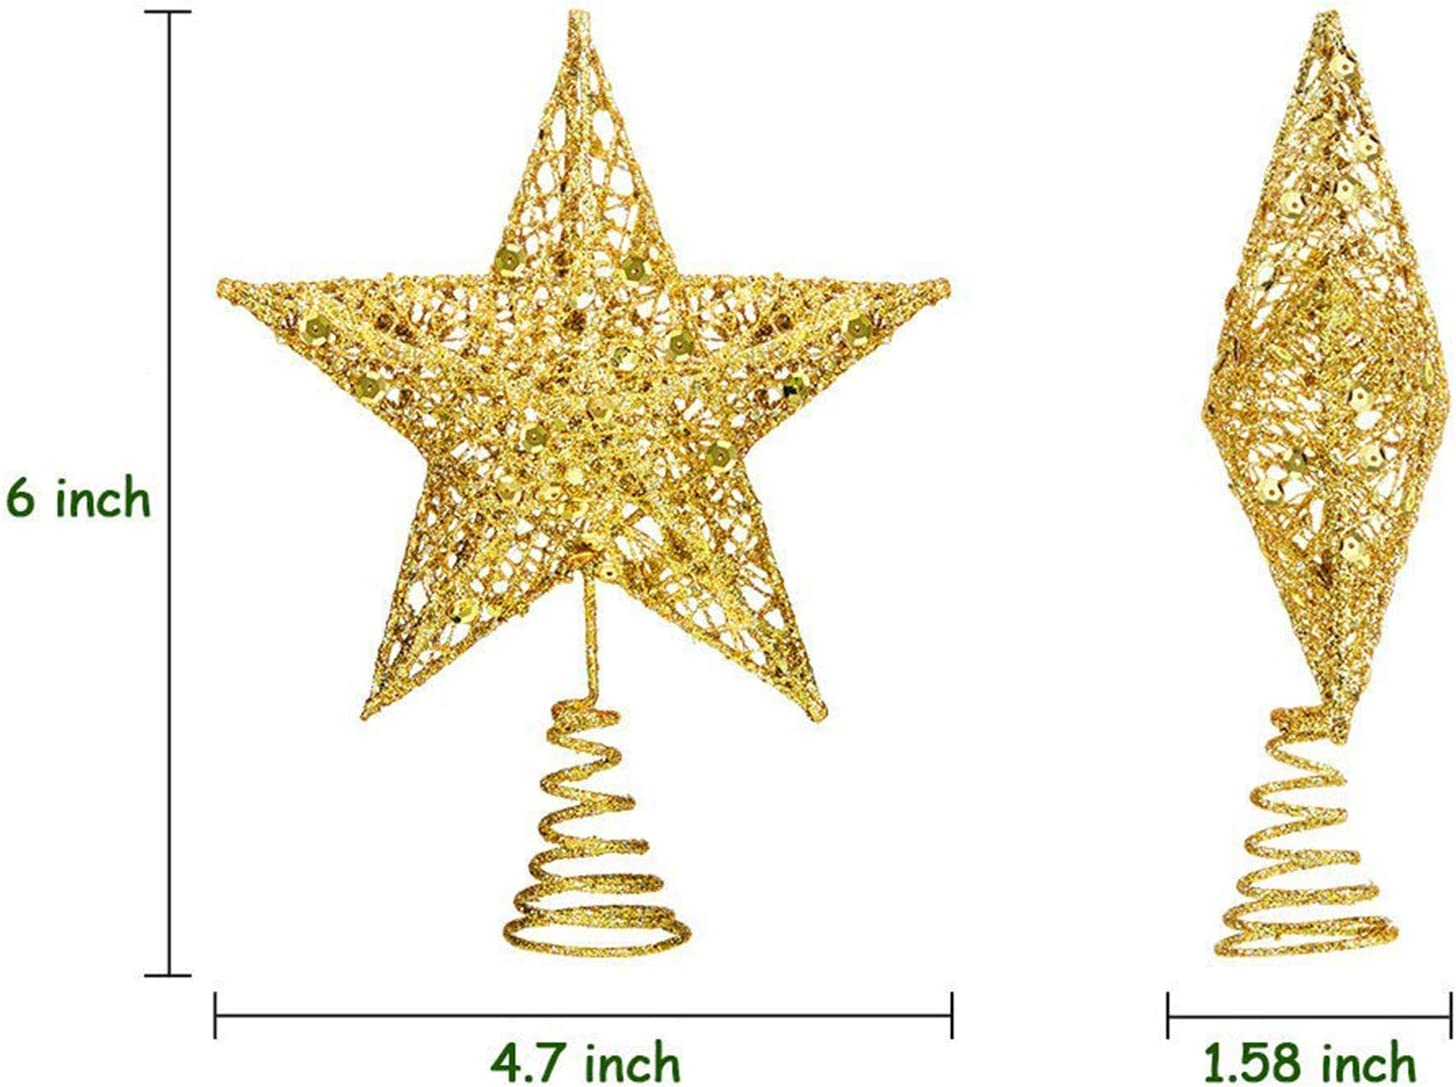 Red EVERMARKET Metal Glittered Christmas Tree Topper Hallow Wire Star Topper for Christmas Tree Ornament Decor Decoration